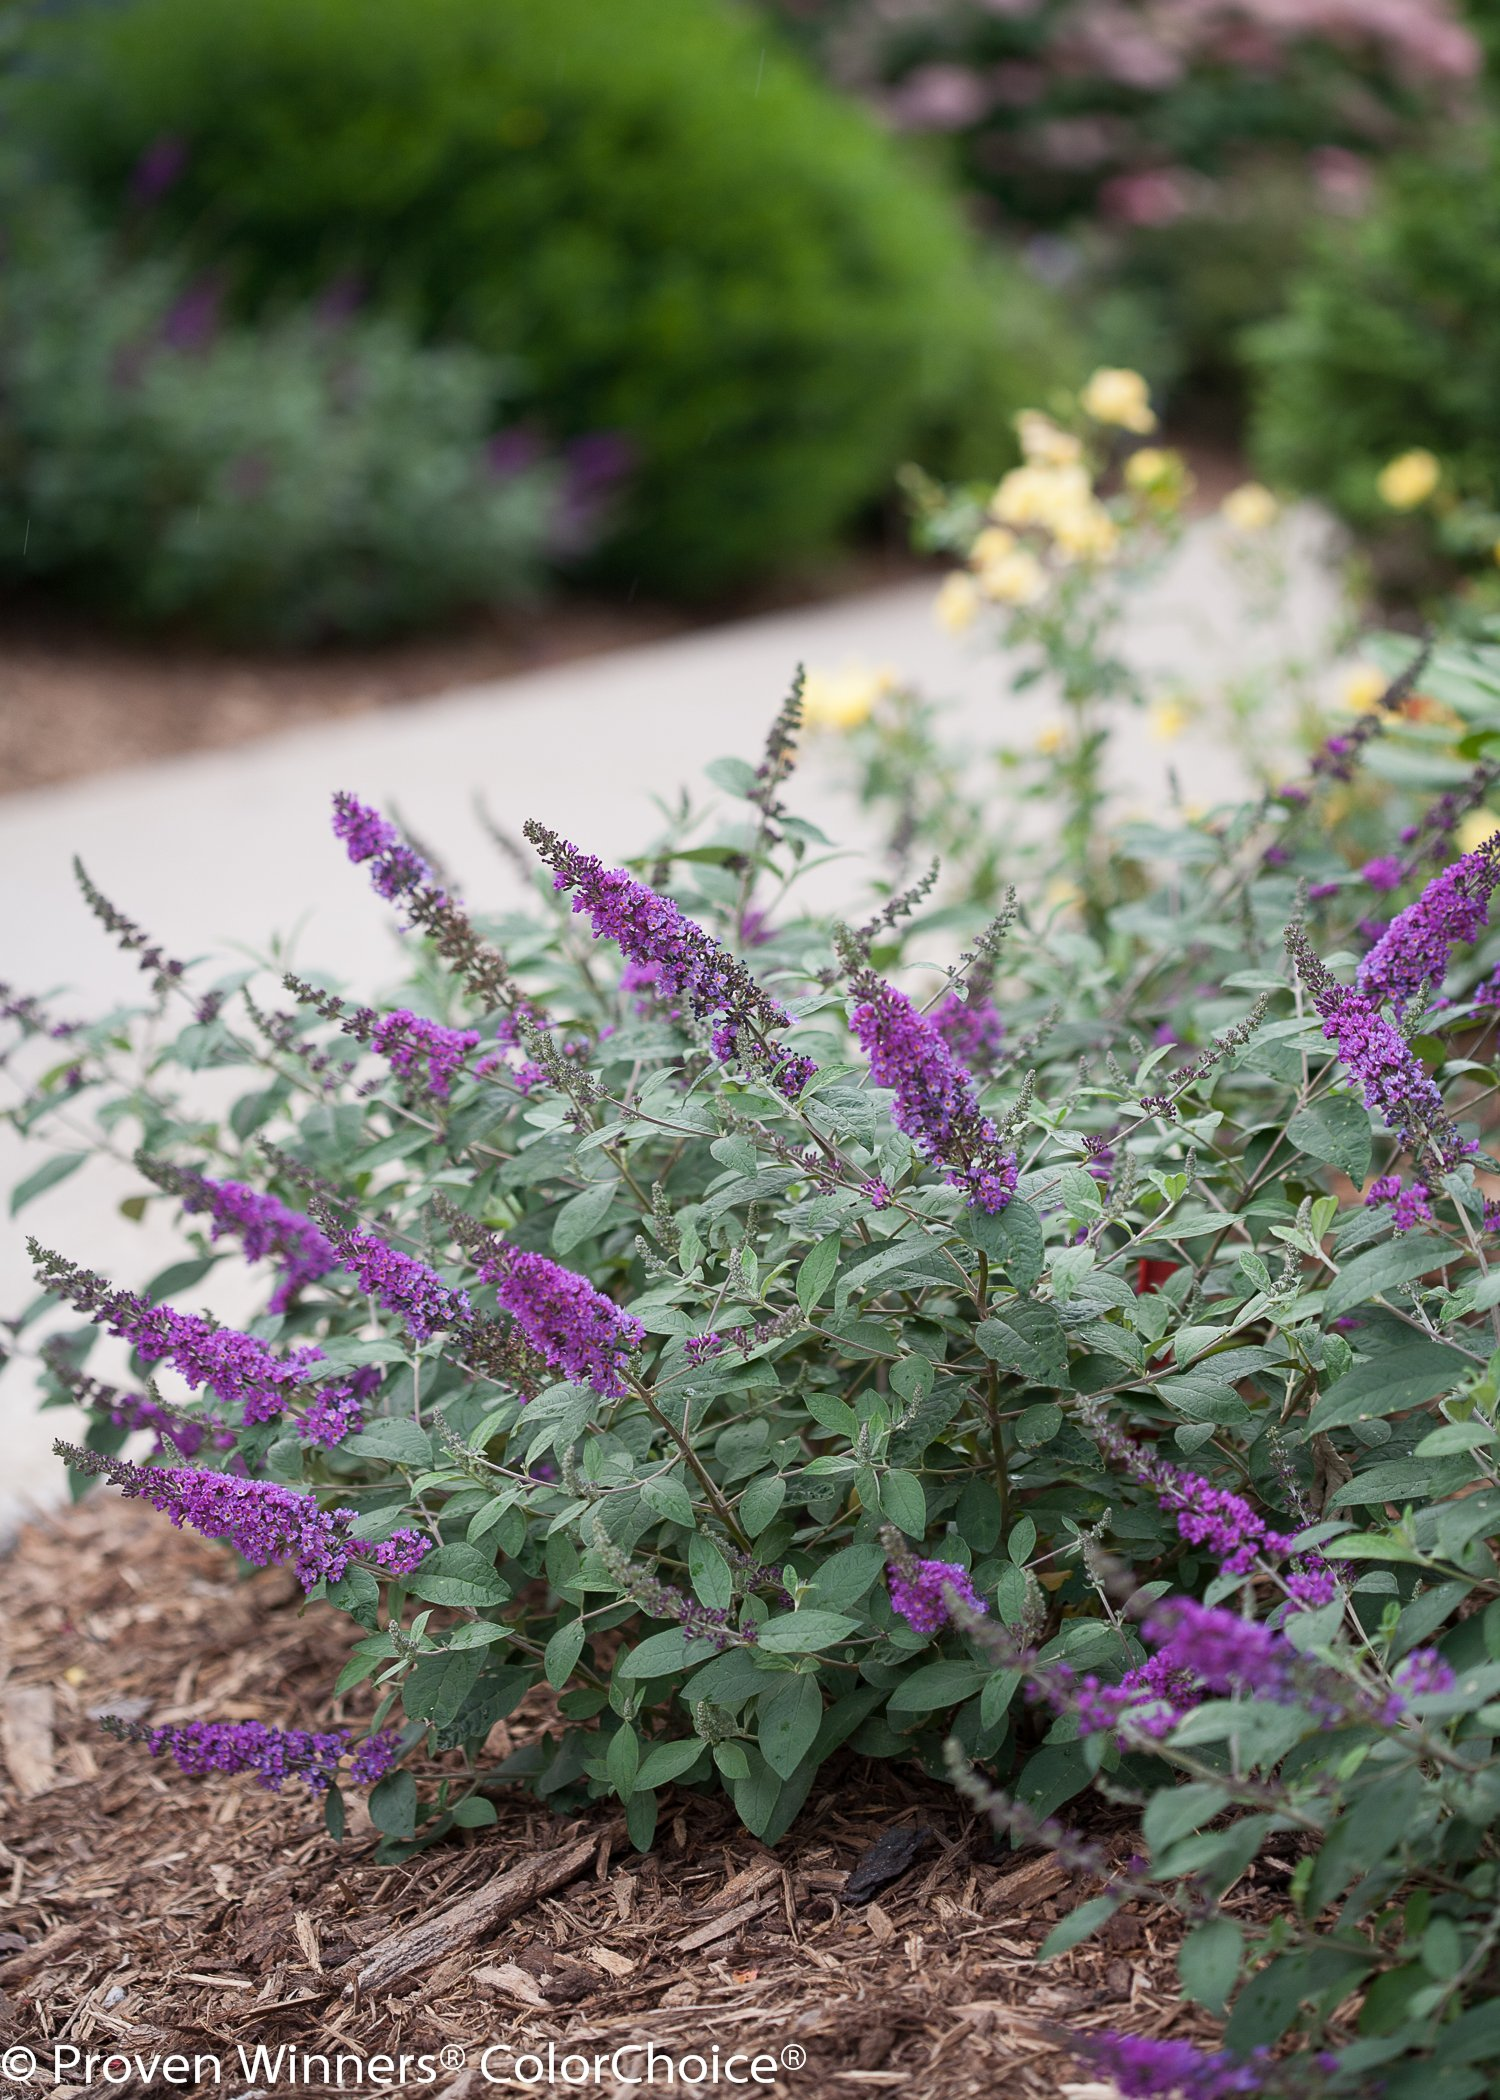 1 Gal. Lo & Behold 'Blue Chip Jr.' Butterfly Bush (Buddleia) Live Shrub, Blue-Purple Flowers by Proven Winners (Image #7)